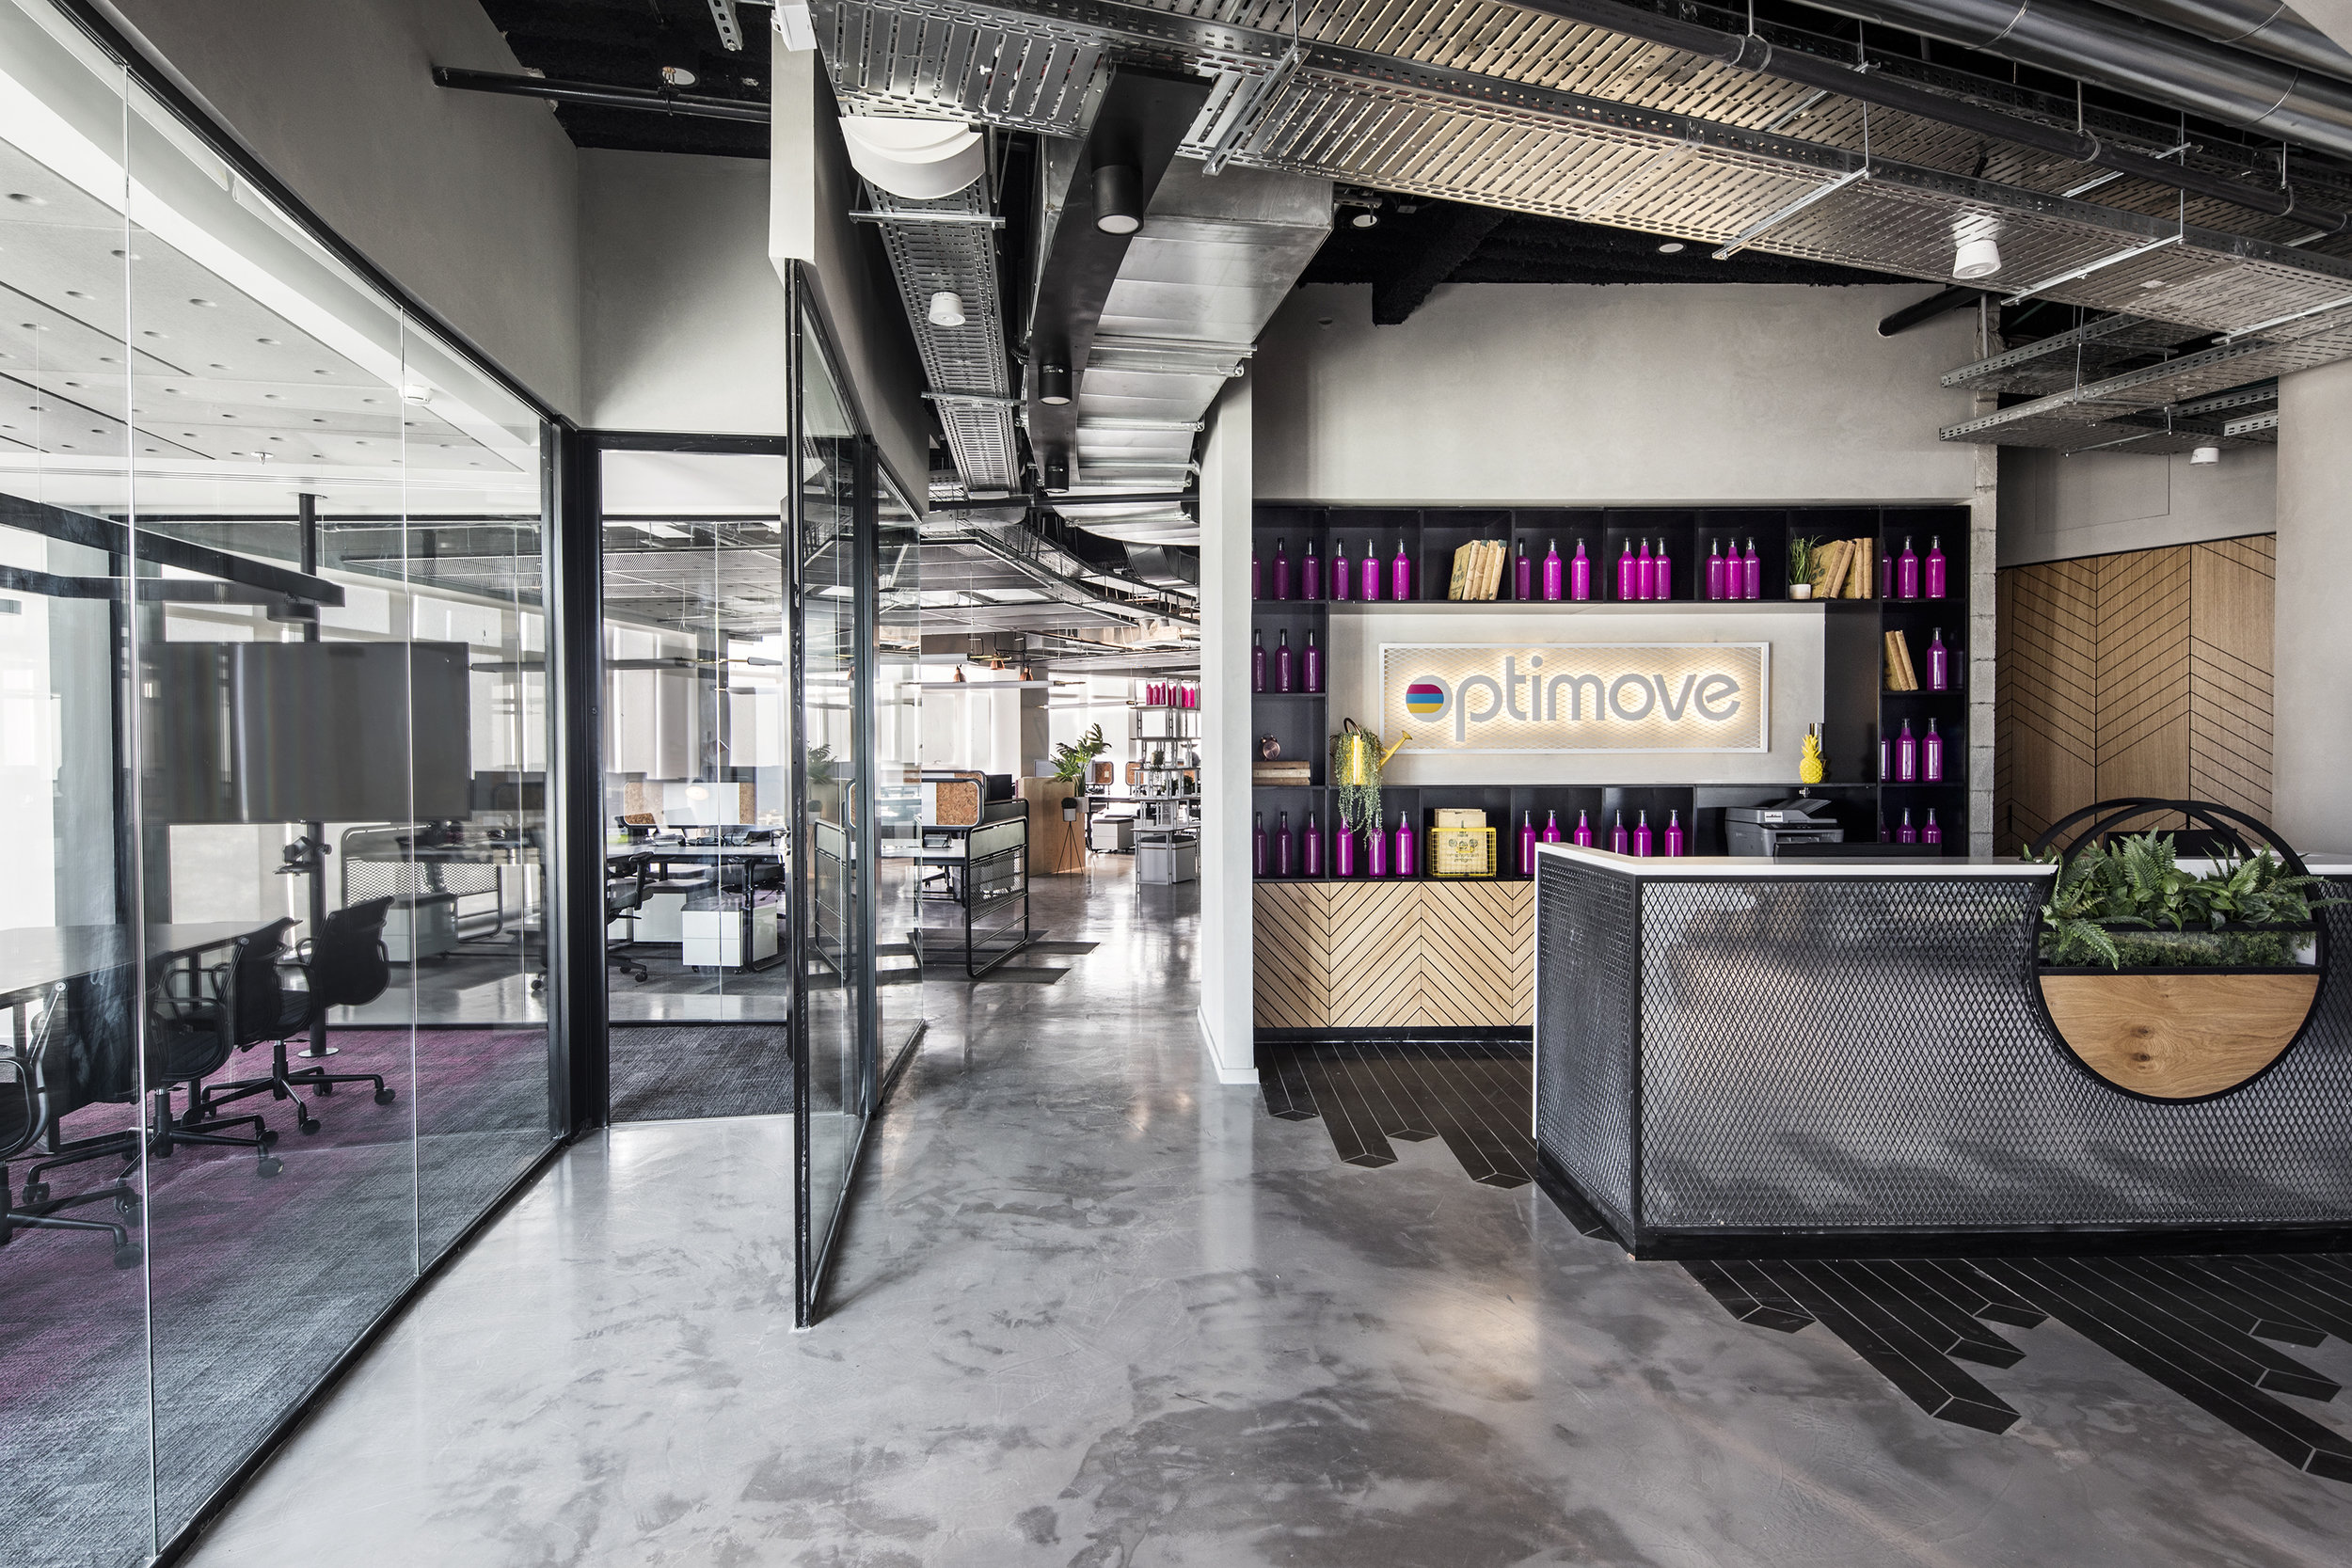 optimove offices - roy david architecture studio